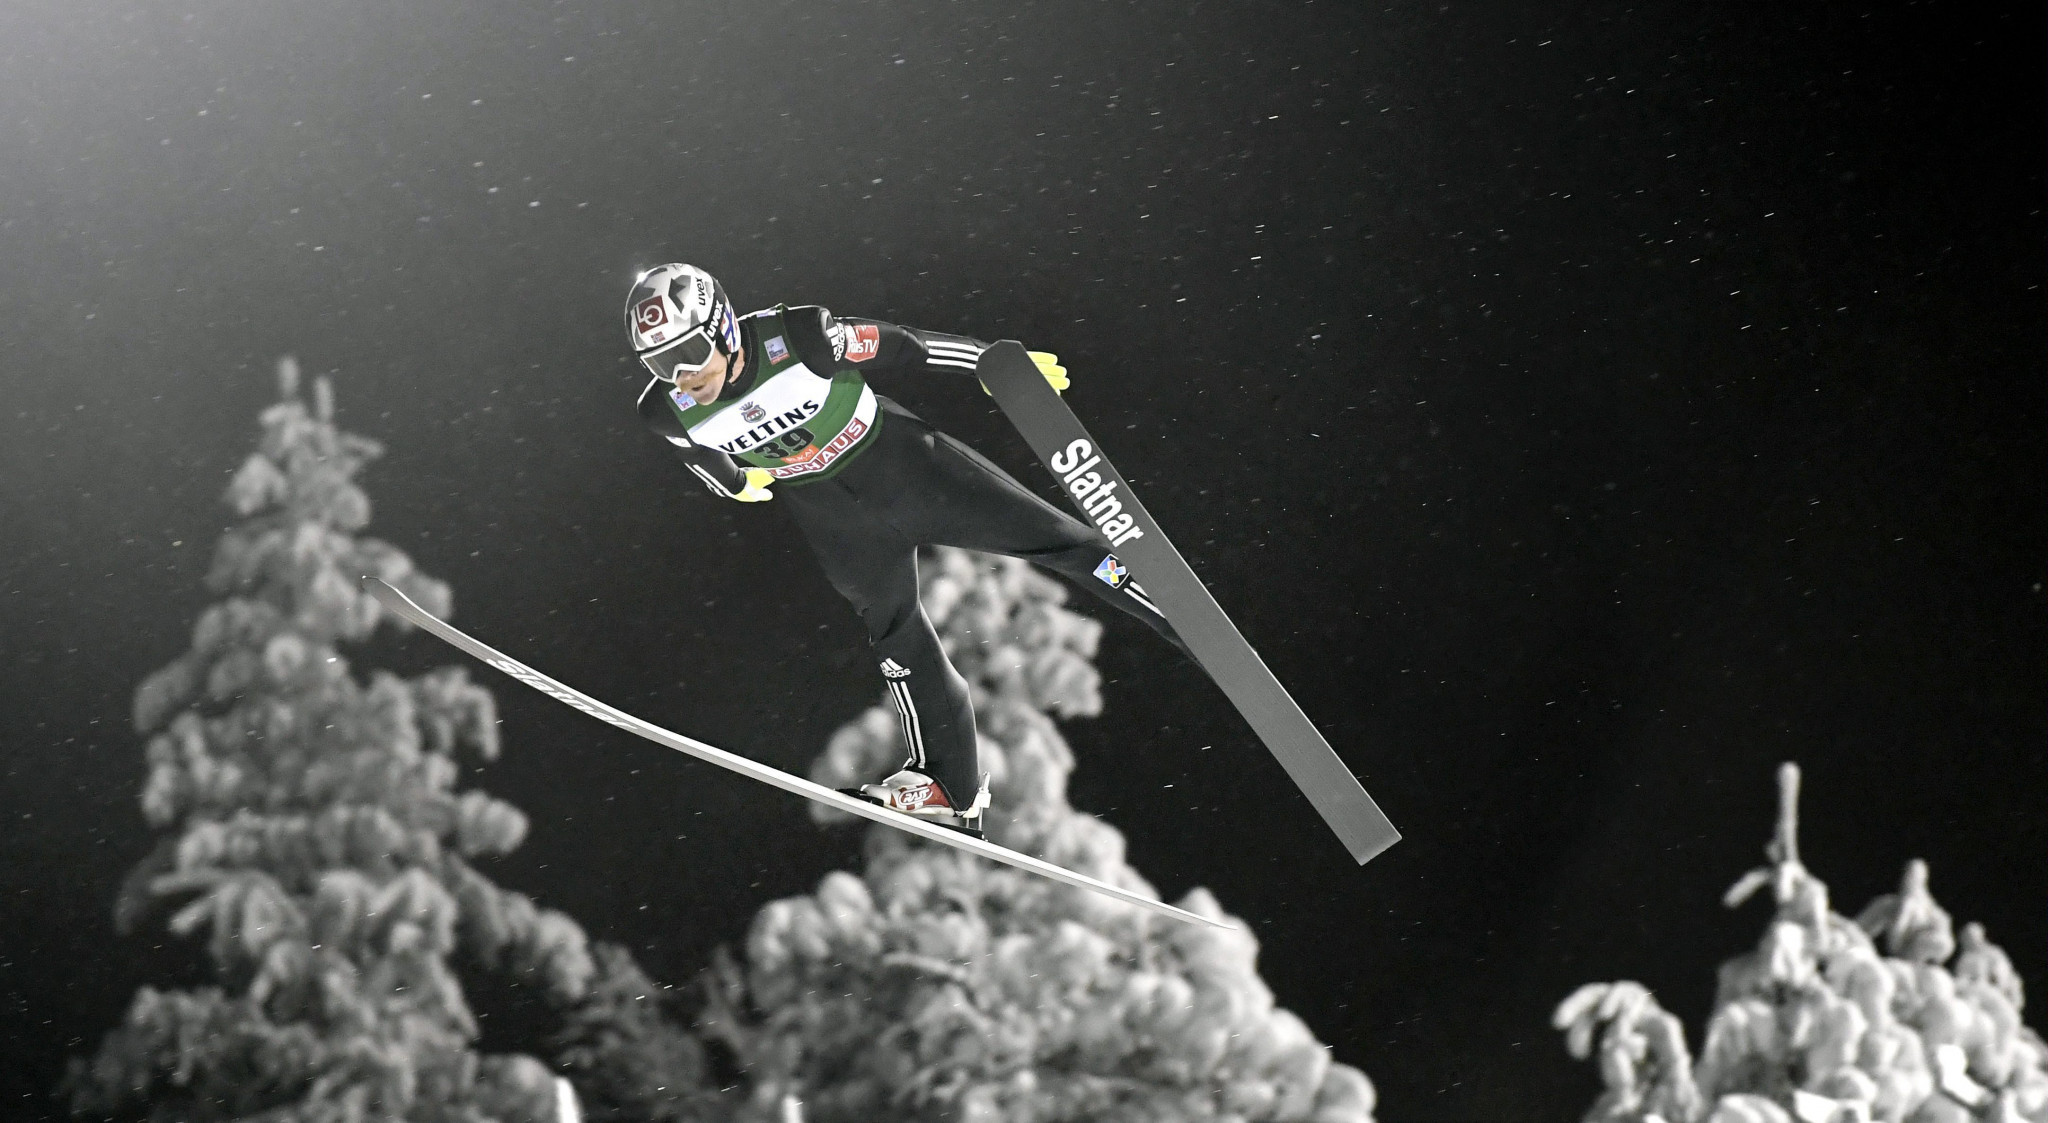 Norway pip Poland and hosts Germany to FIS Ski Jumping World Cup in Titisee-Neustadt